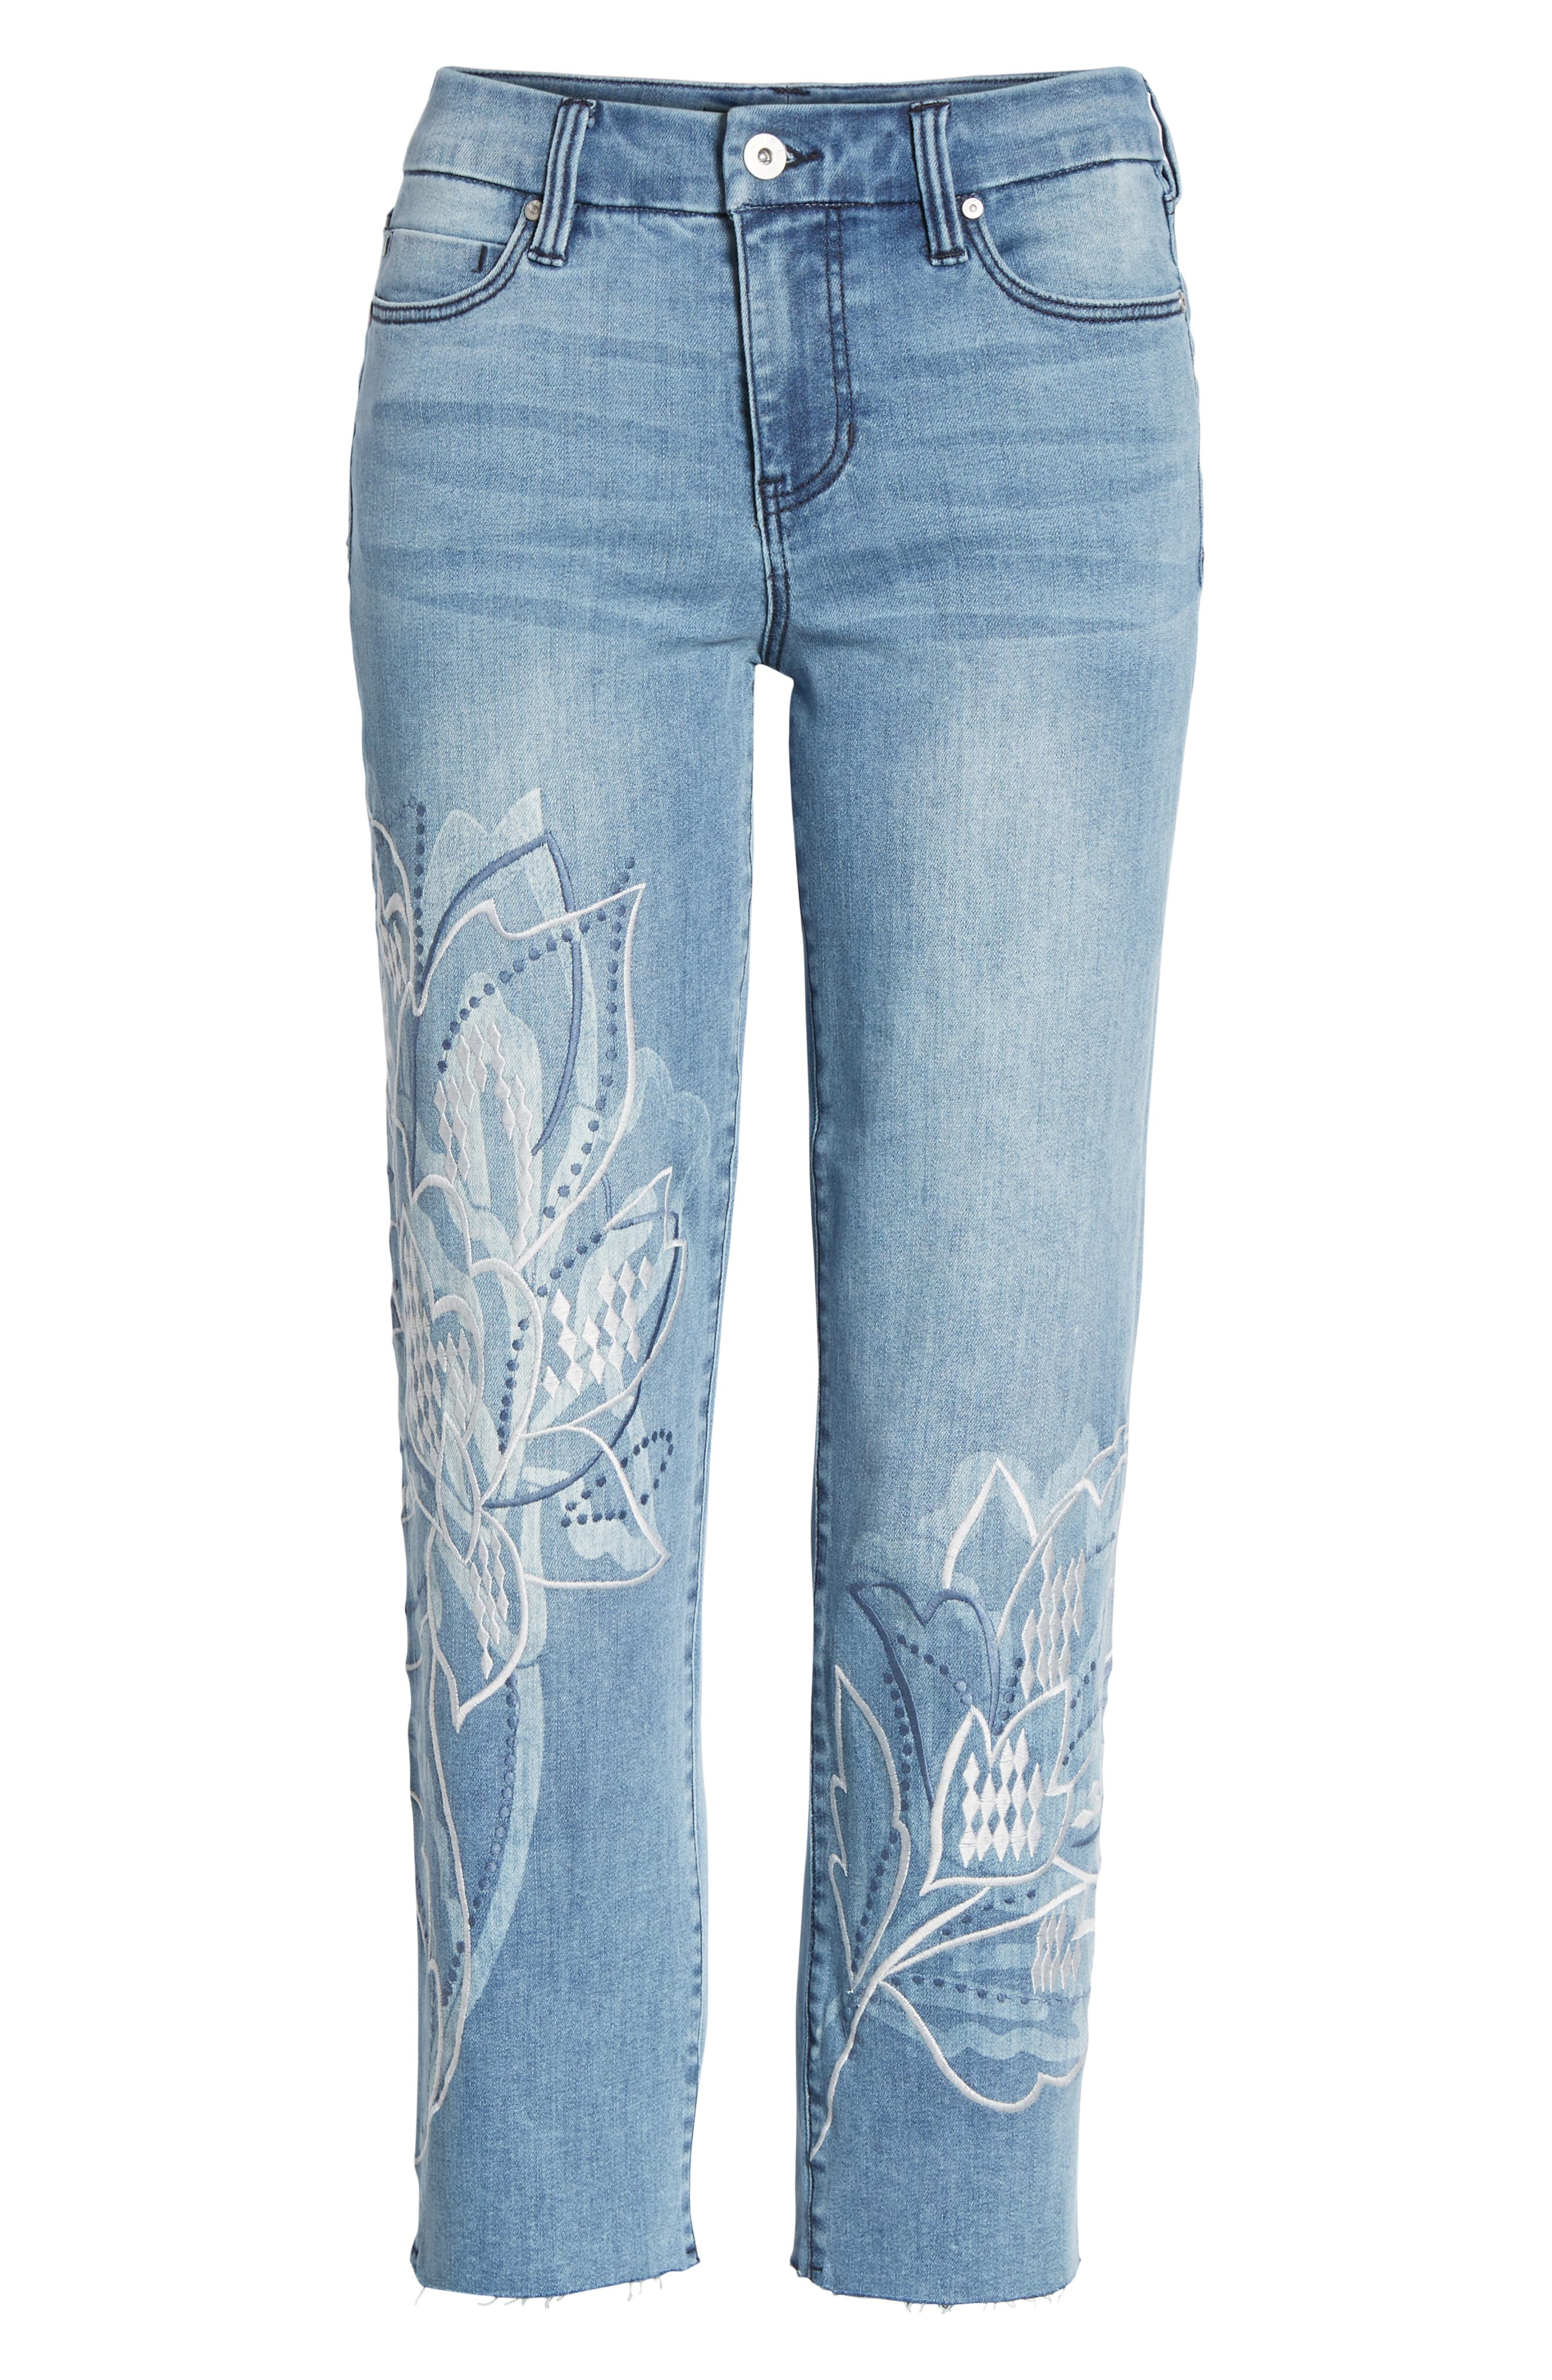 LVPL by Liverpool Carter Floral Embroidery Crop Jeans,                             Alternate thumbnail 6, color,                             401